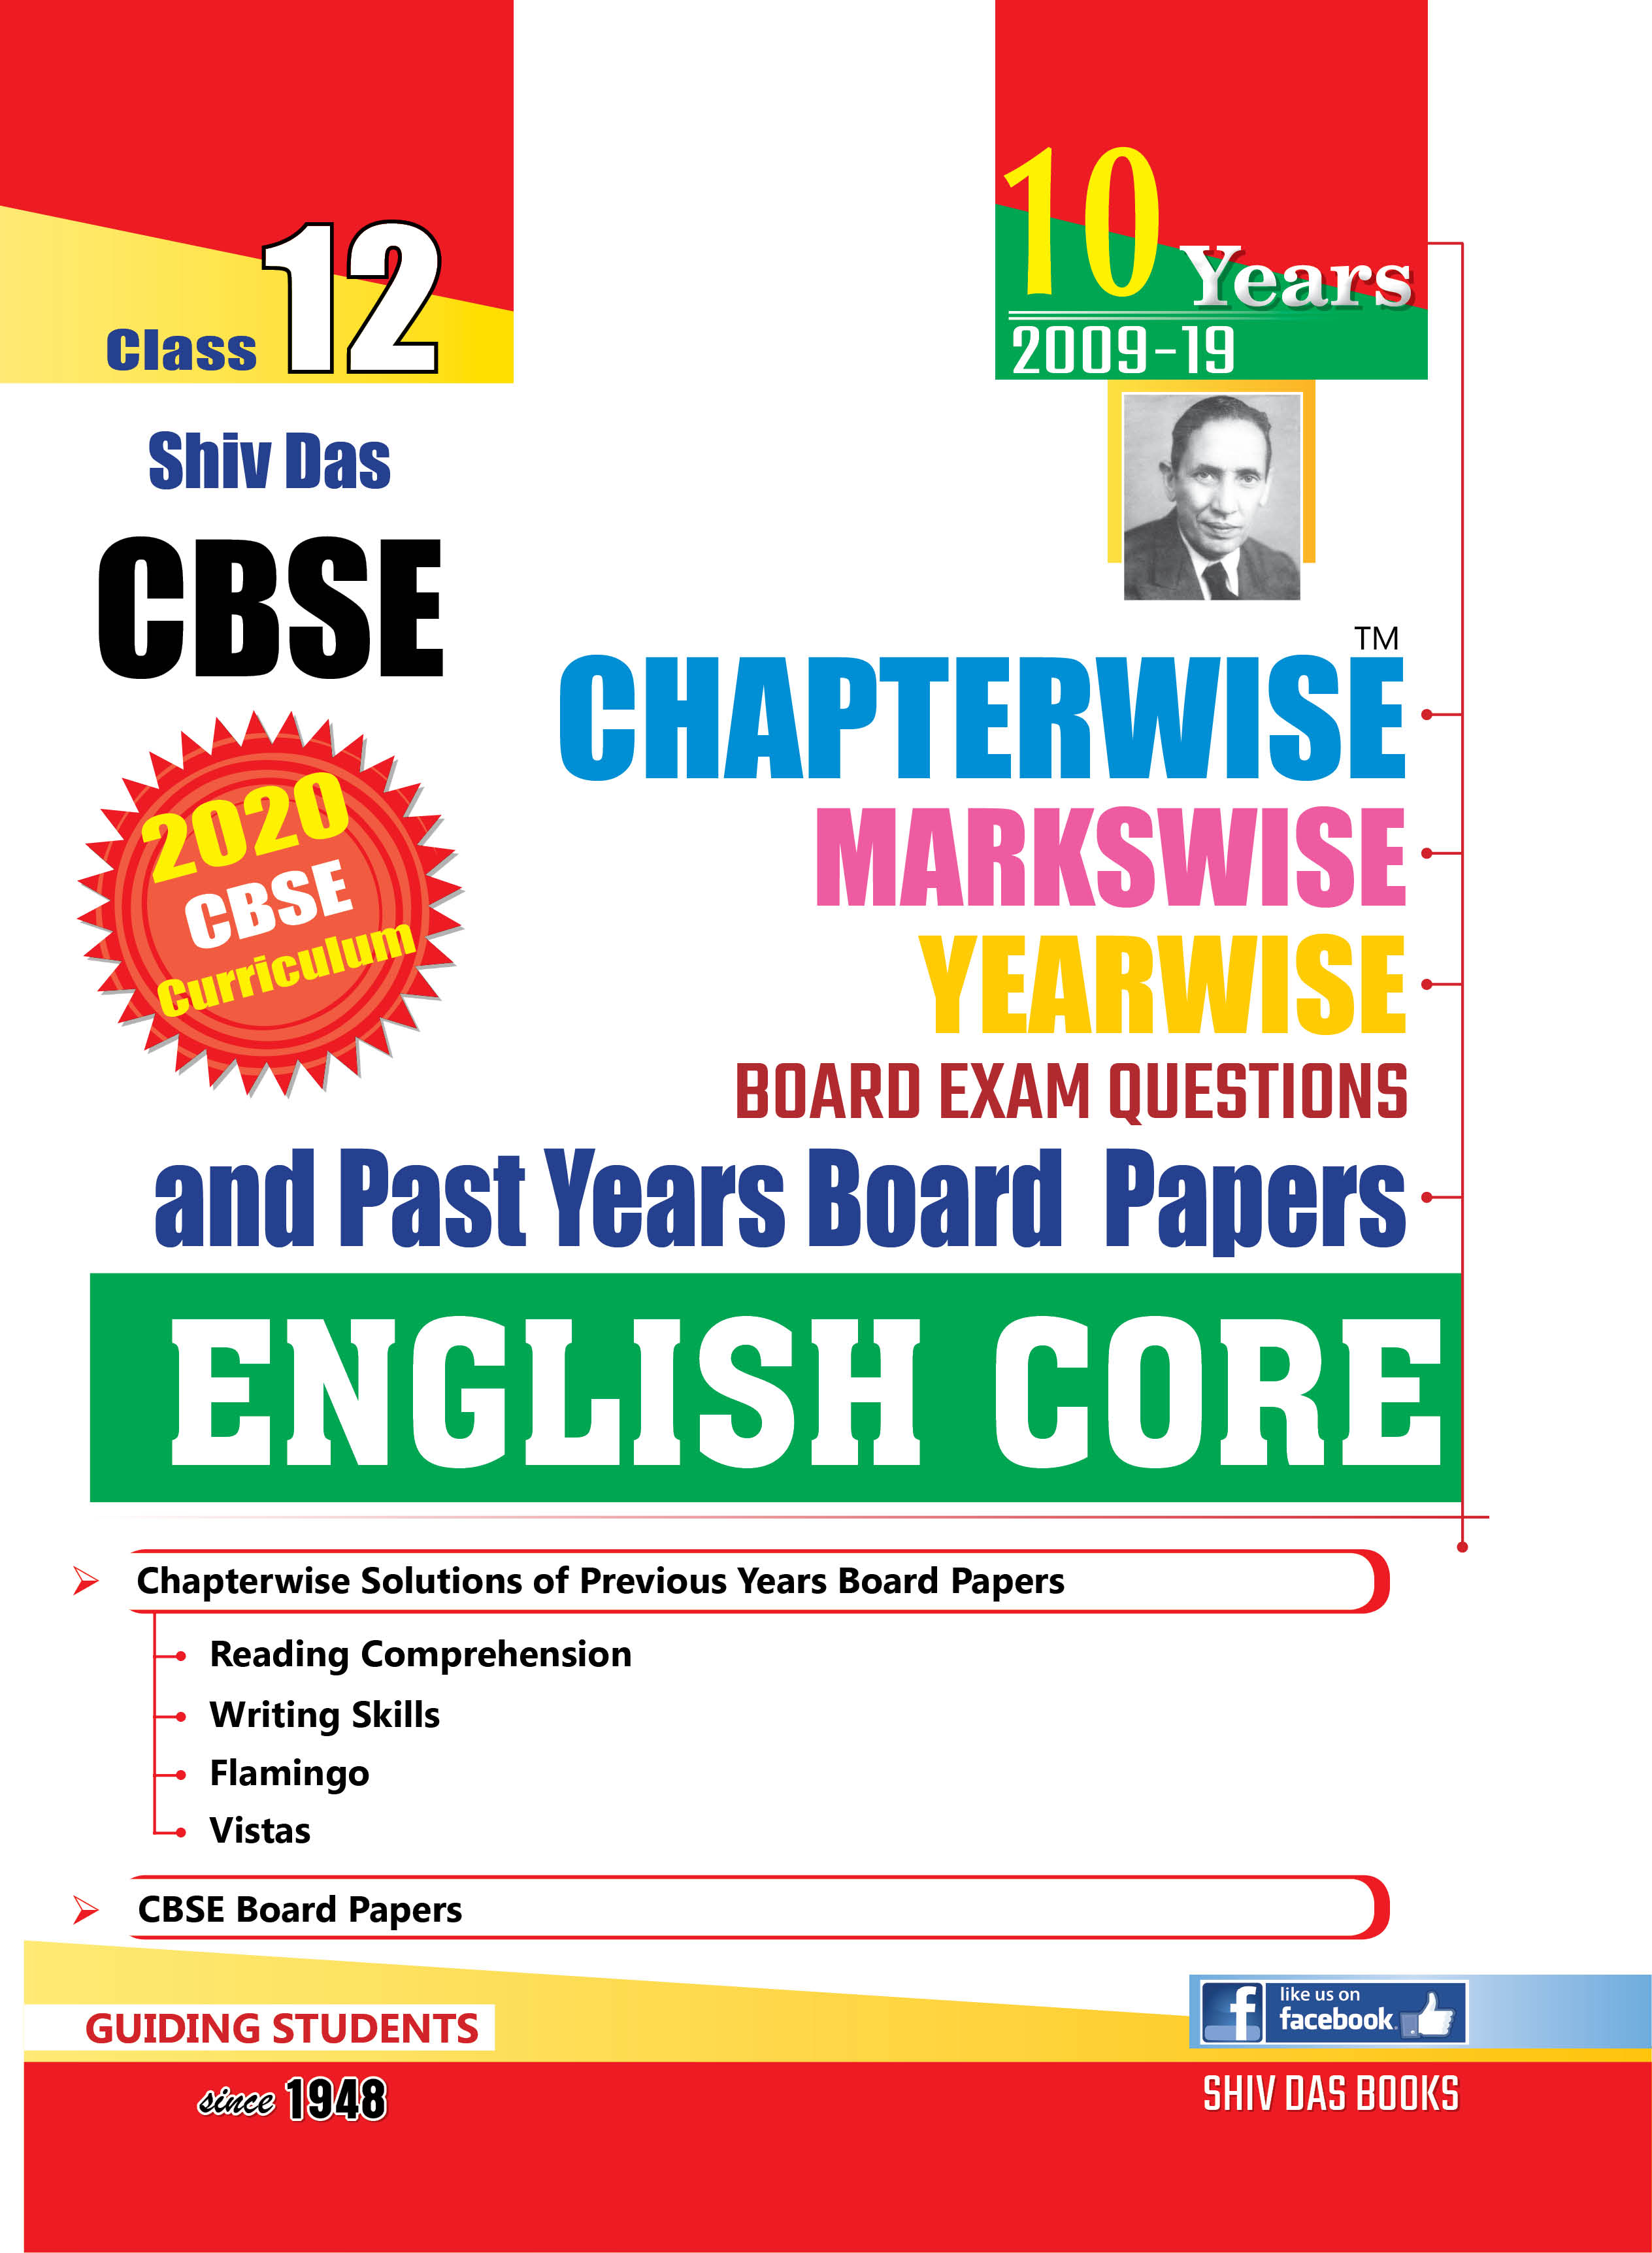 CBSE Chapterwise Markswise Yearwise Board Exam Questions & Past Years Board Papers For Class 12 English Core (2020 Board Exam Edition)